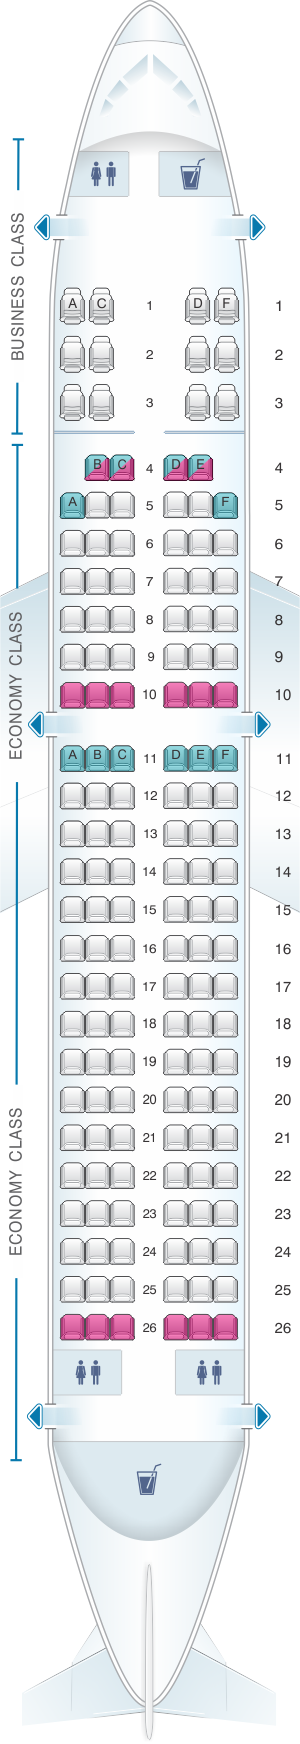 Seat map for Air India Airbus A320 Twin Classic